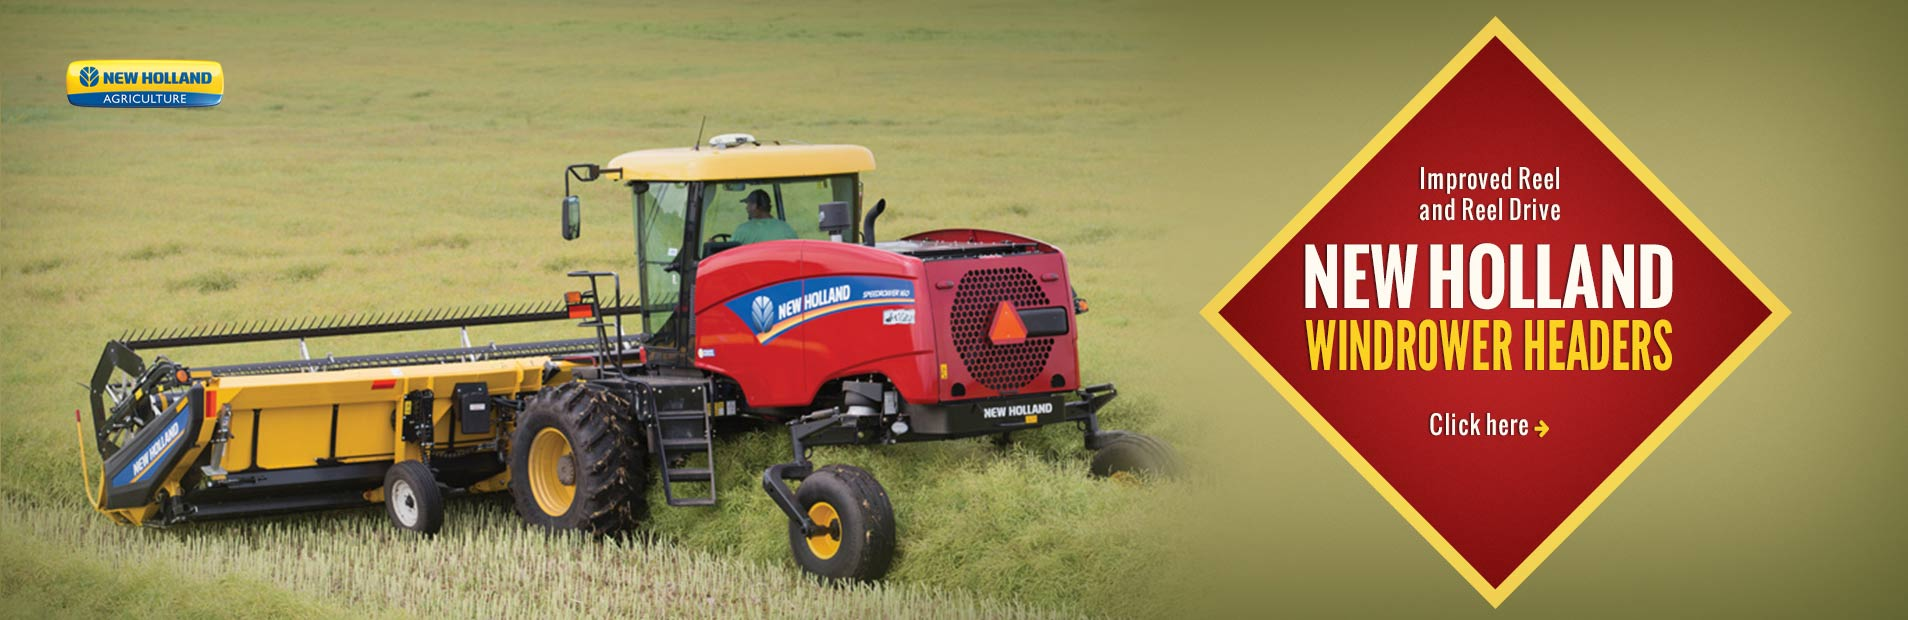 Click here to view our selection of New Holland windrower headers!